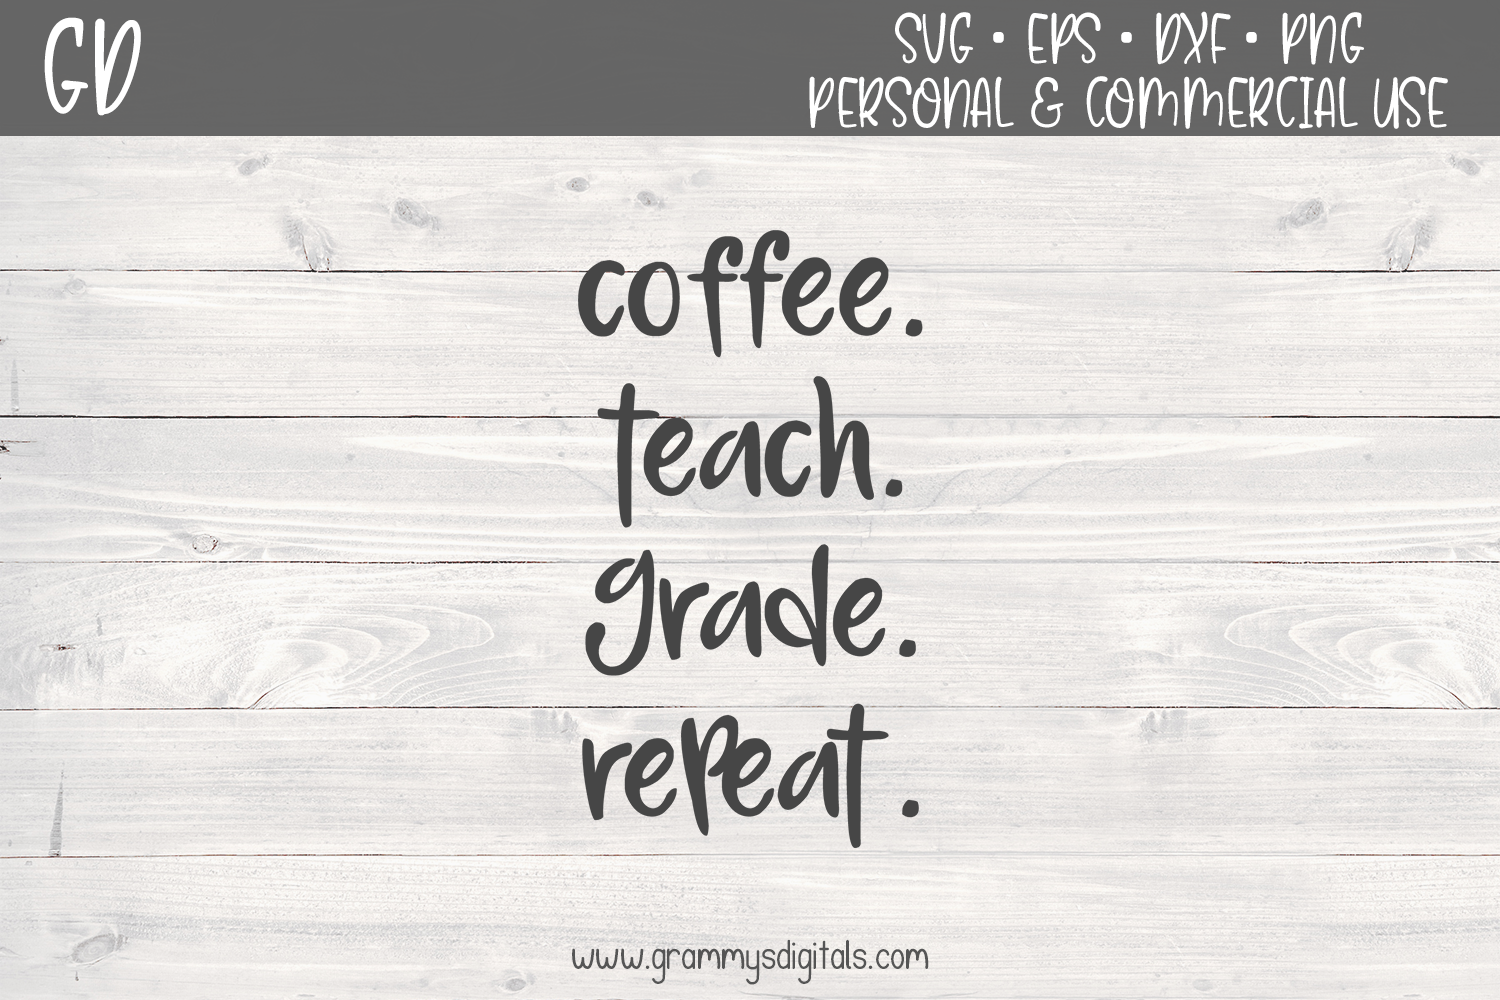 Download Free Coffee Teach Grade Repeat Graphic By Grammy S Digitals for Cricut Explore, Silhouette and other cutting machines.